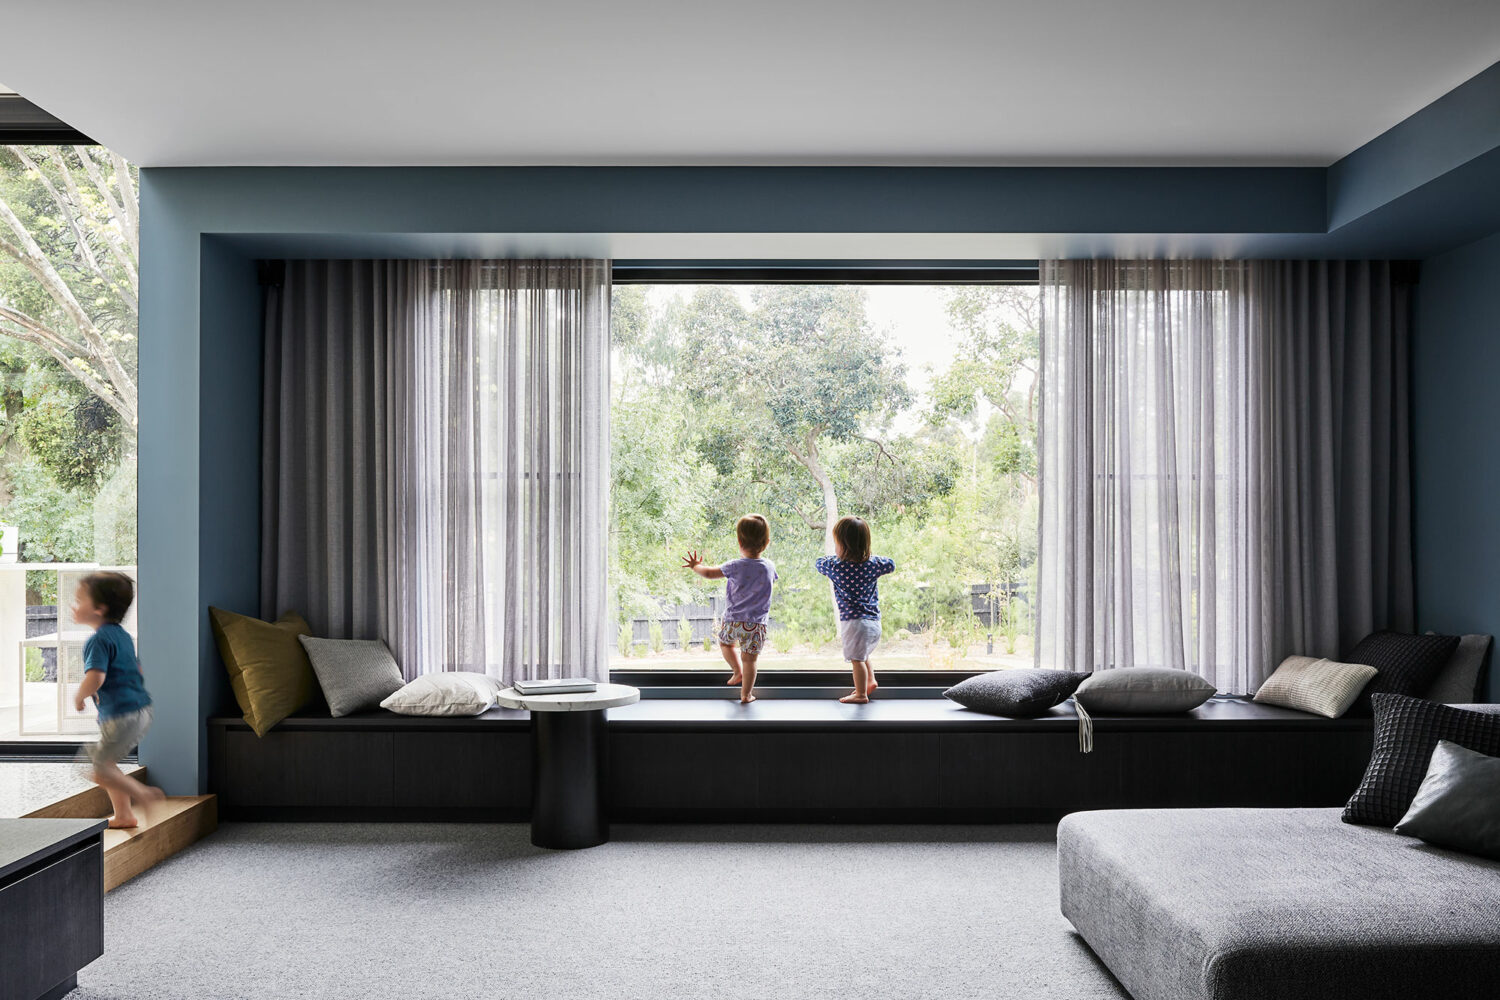 Maike Design lounge room. Bench steat and sheer curtains. Blue painted walls